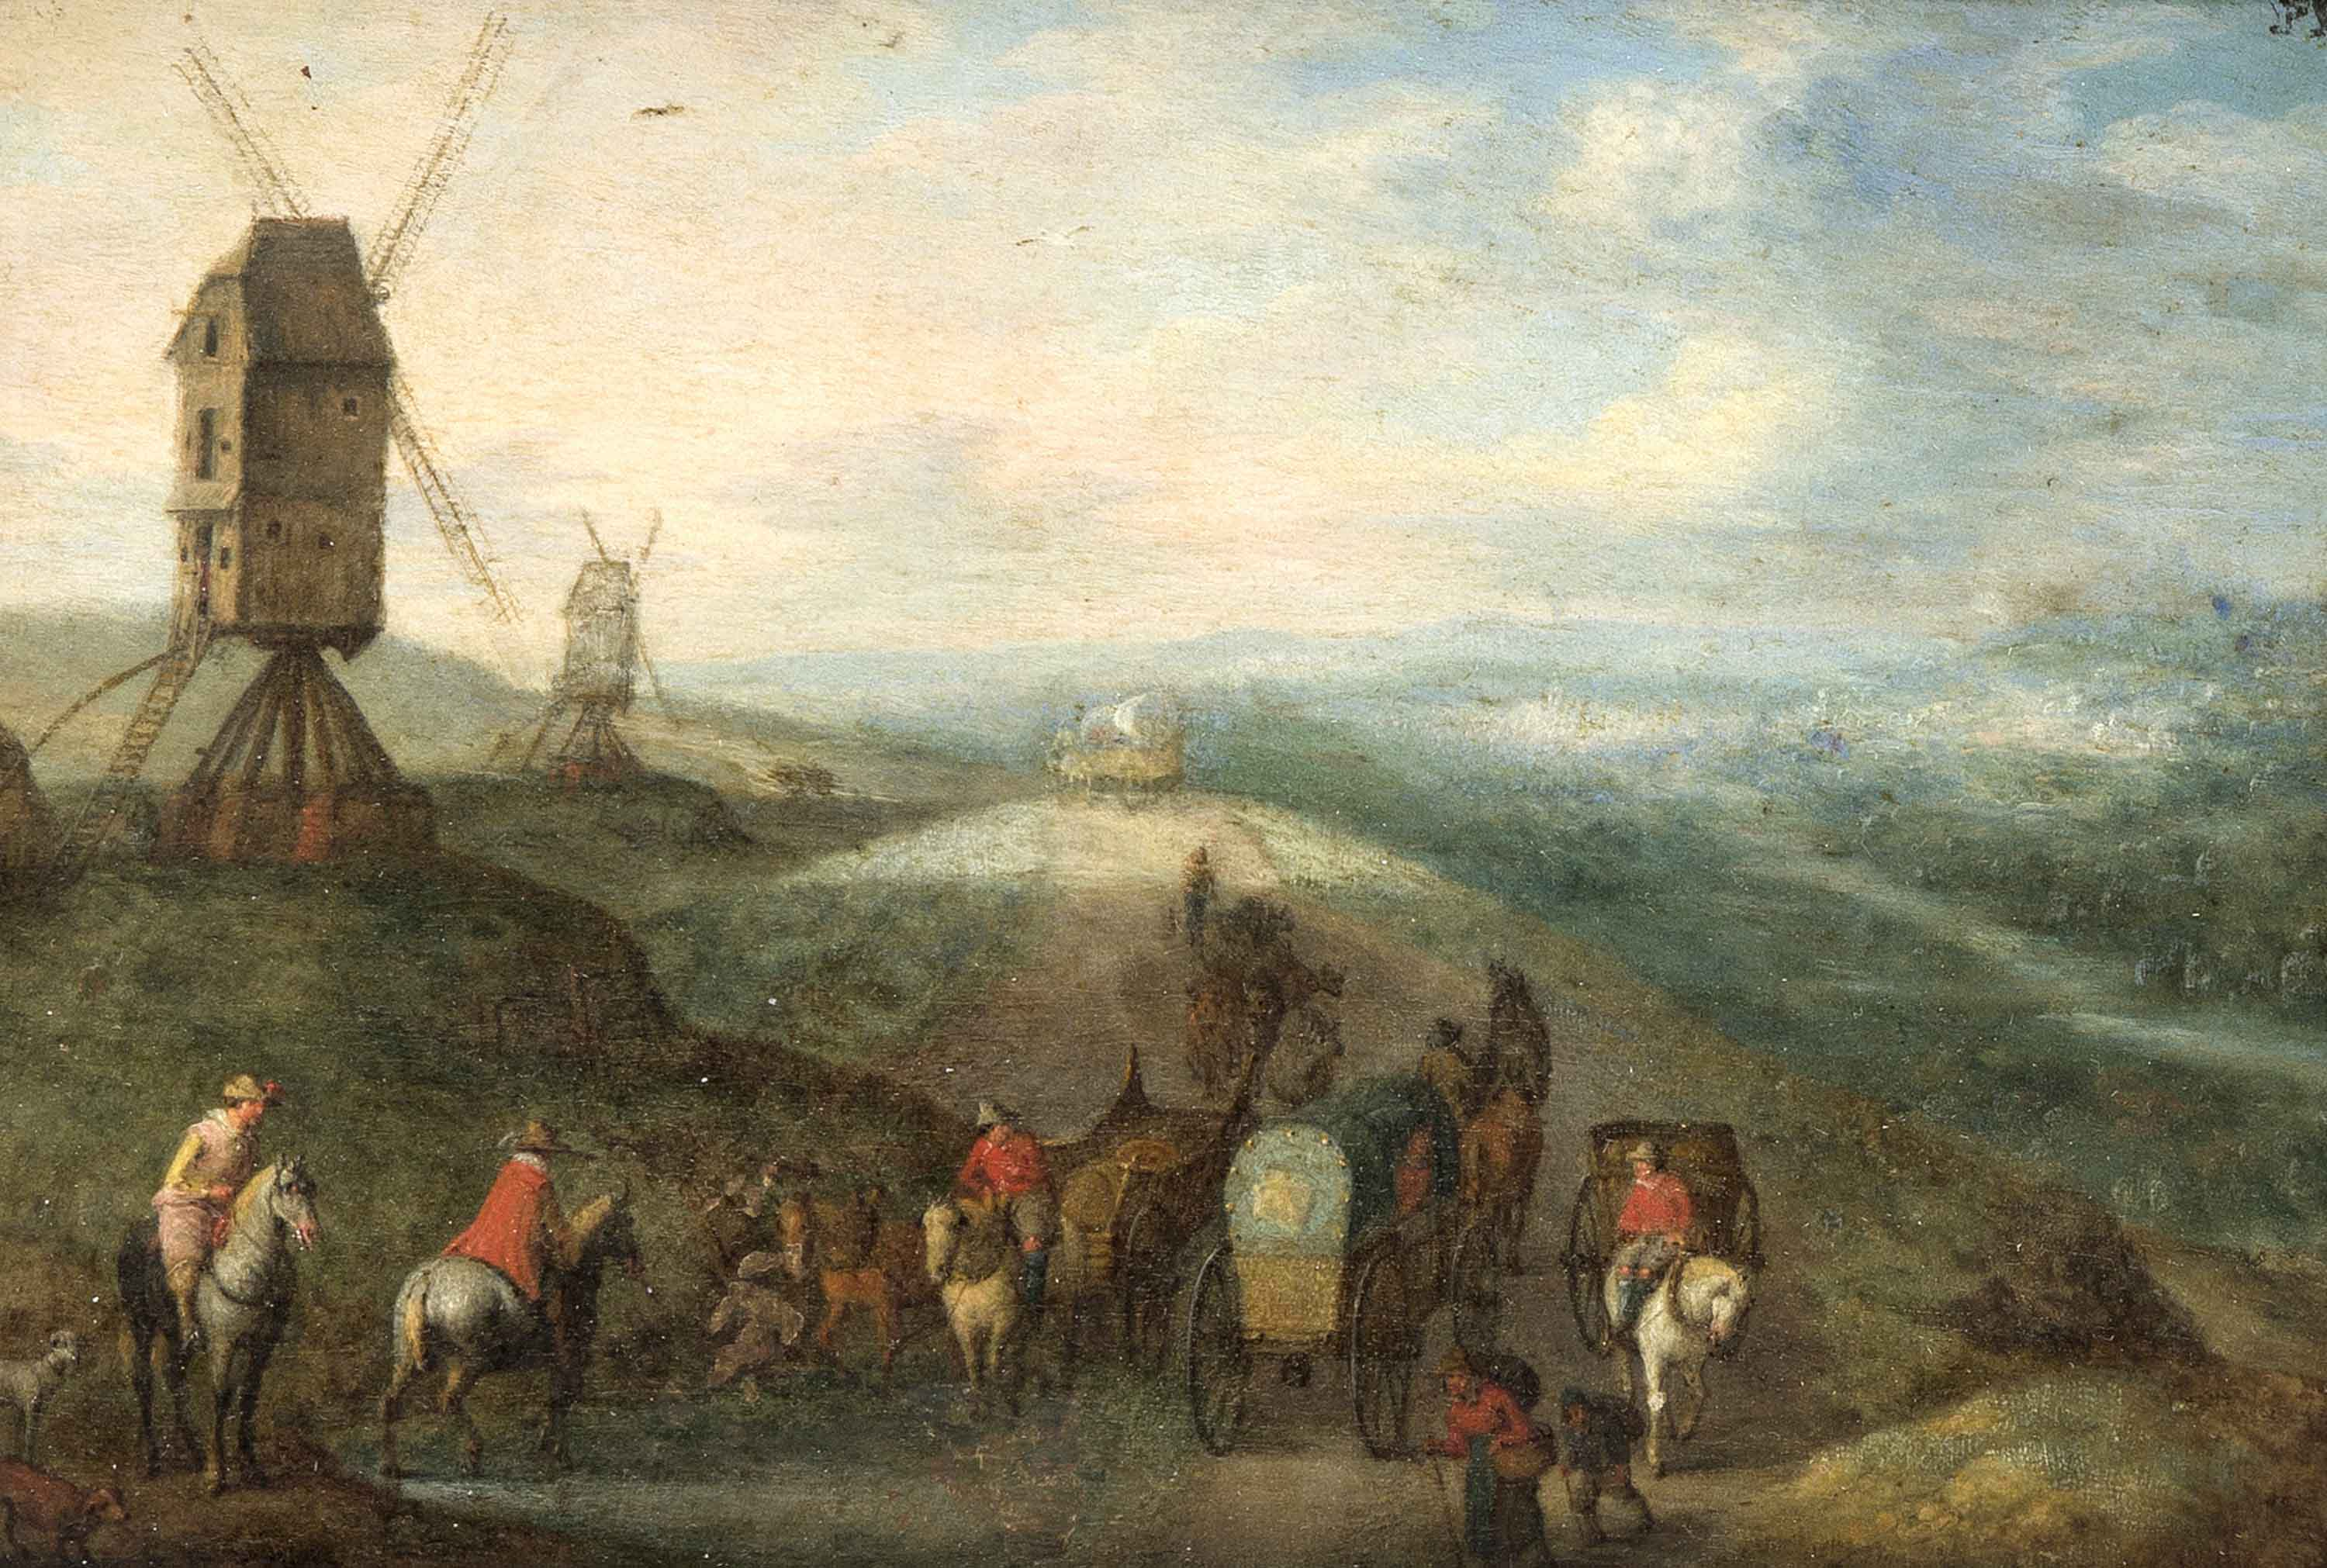 Brueghel, Jan d